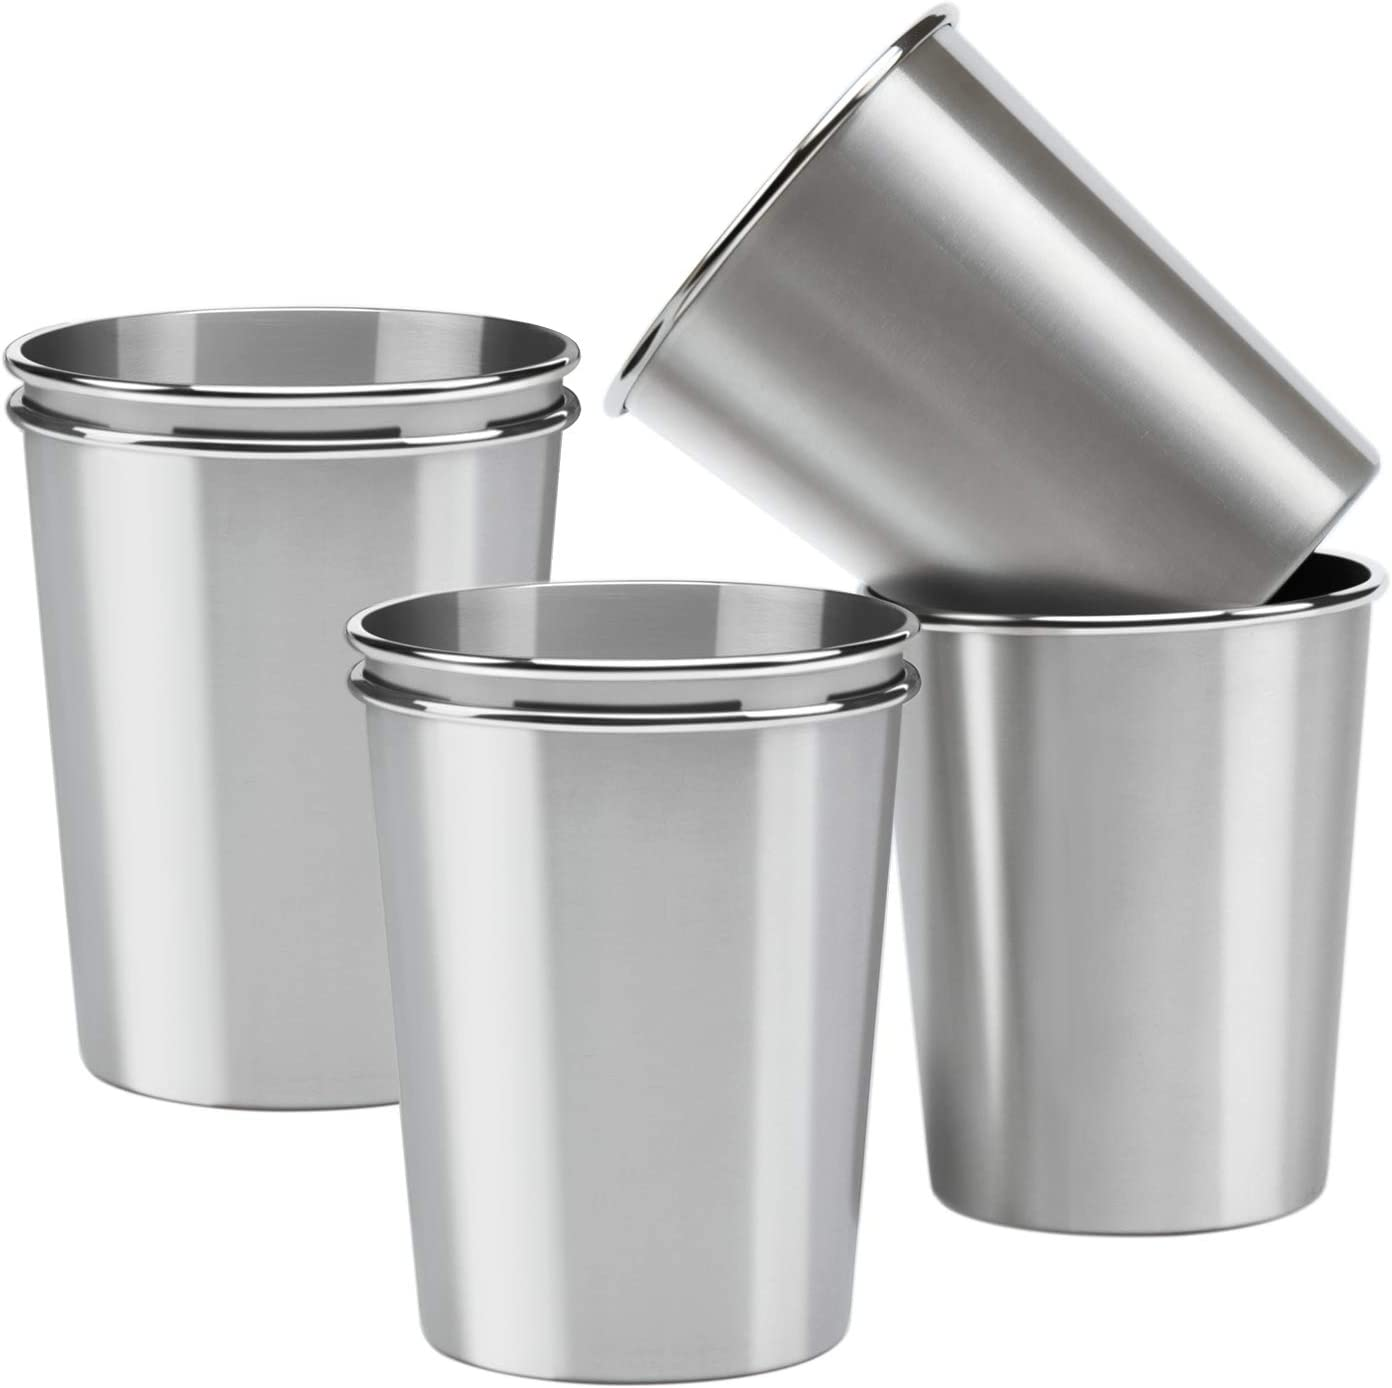 Ruisita 12 Pack Stainless Steel Cups Stainless Steel Pint Cup Tumblers Shatterproof Drinking Glasses Metal Cups for Kids or Adults